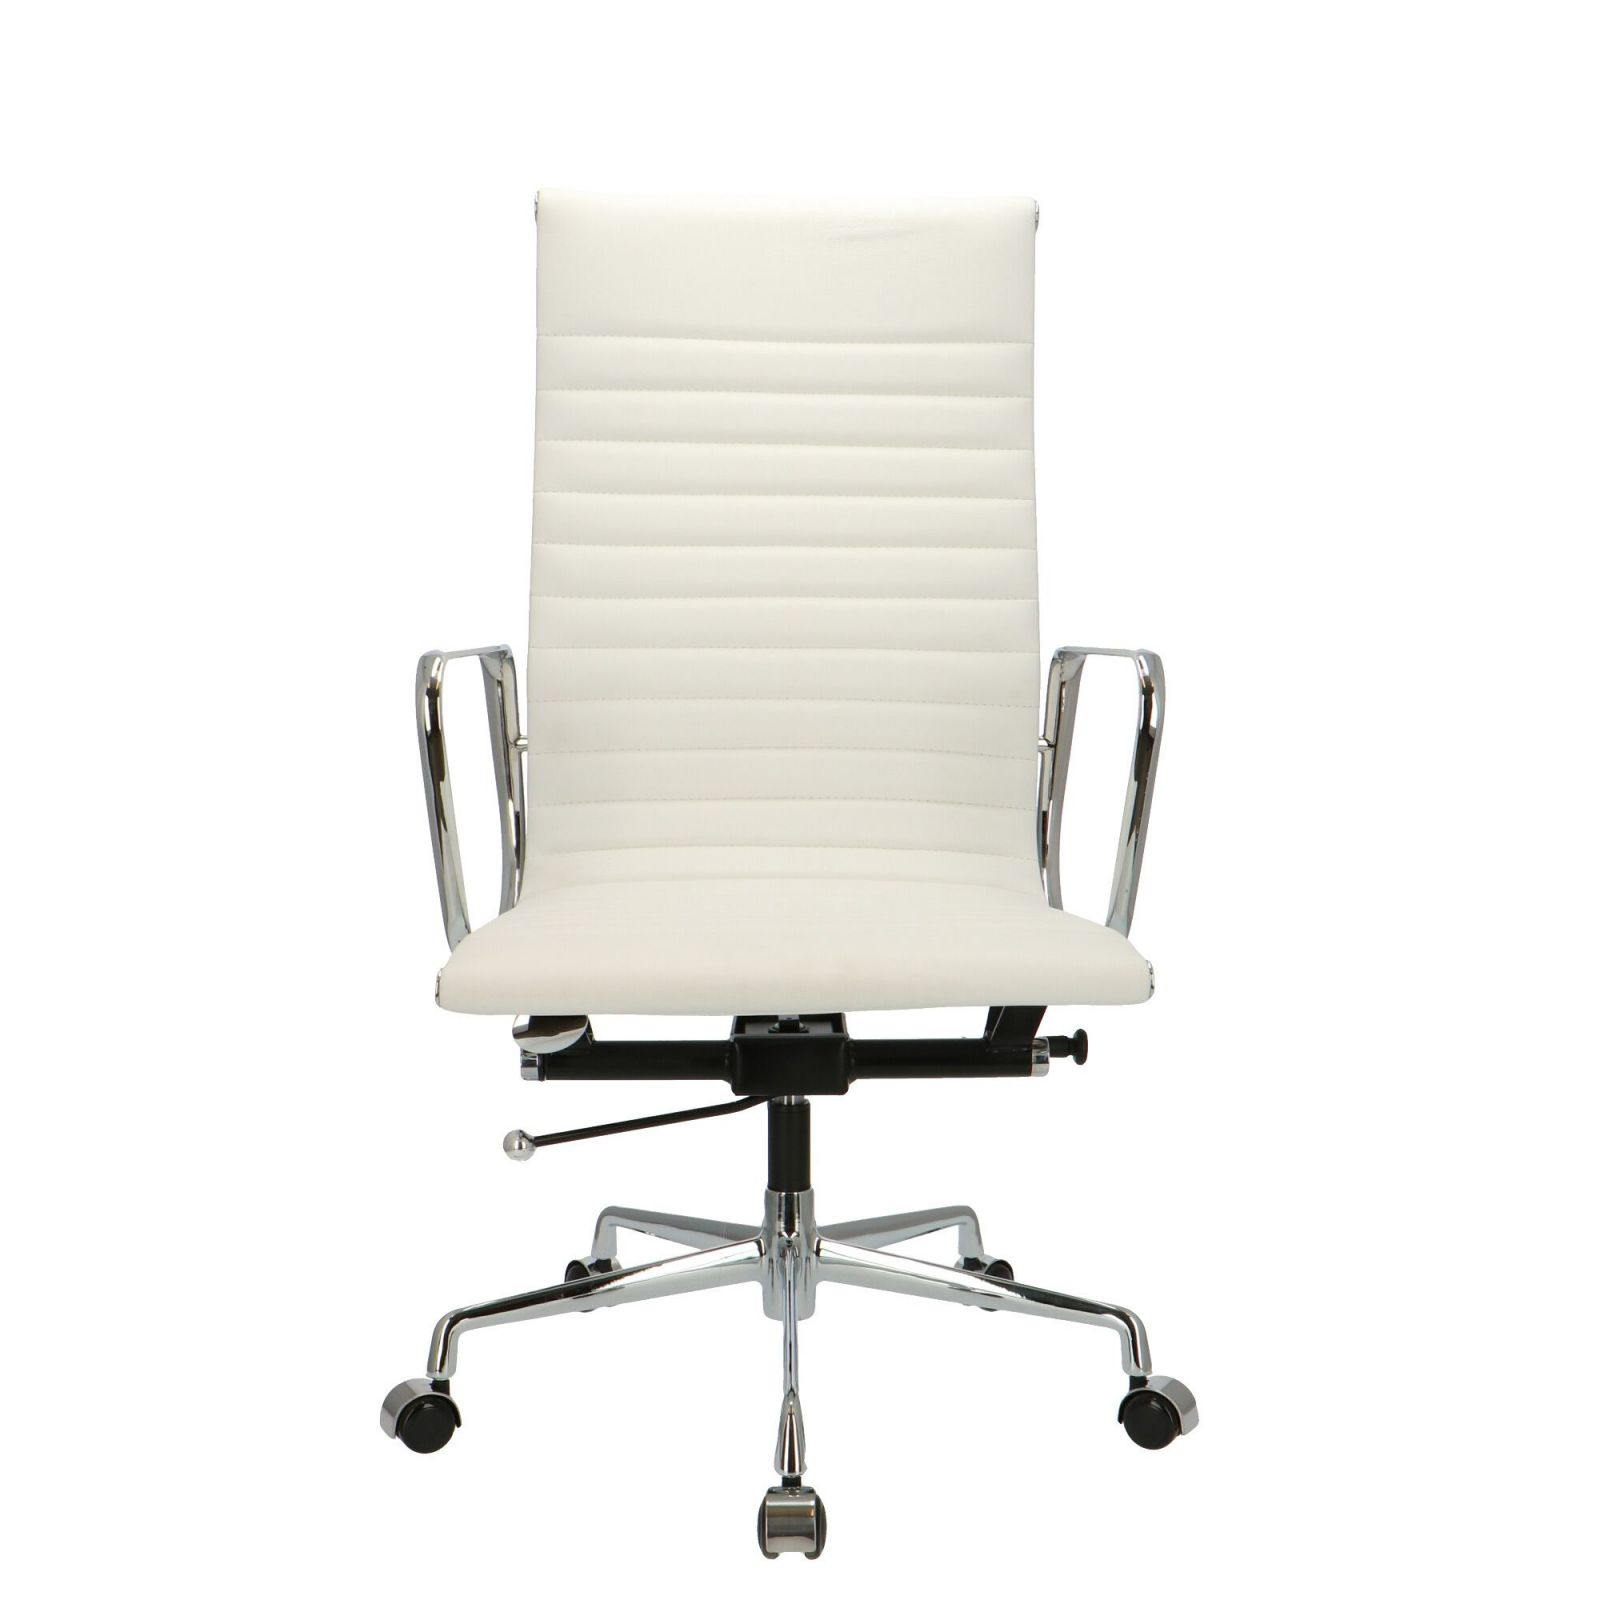 Eames Office Chair Ea 119 White Leather | Popfurniture throughout White Leather Office Chair